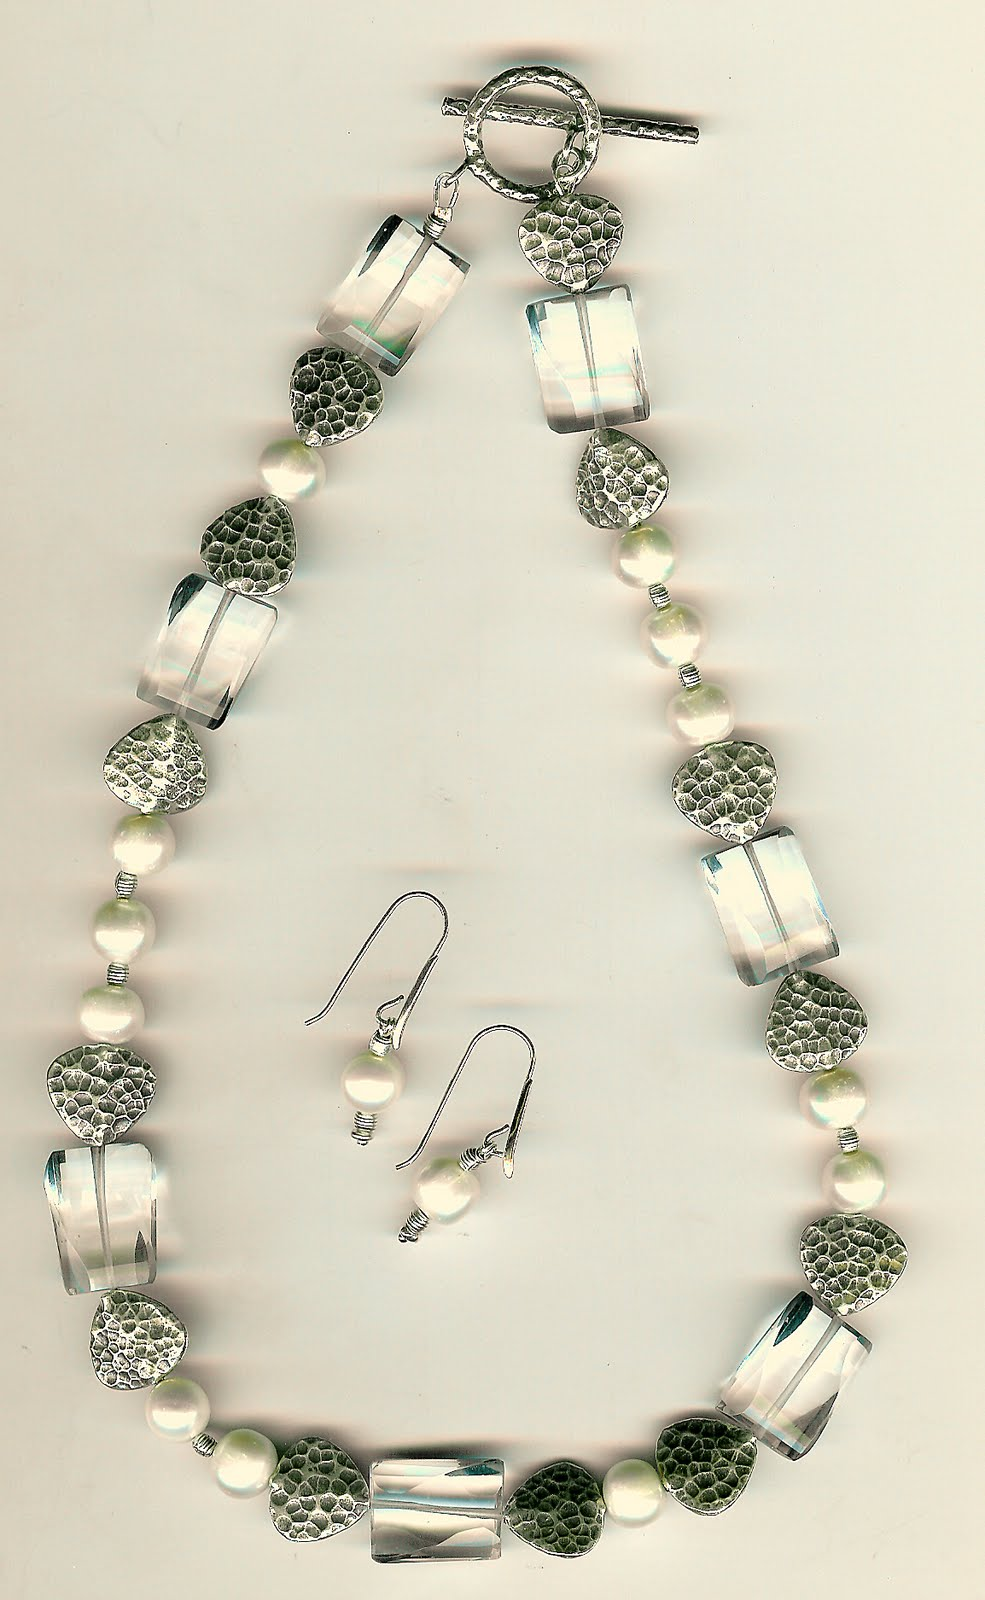 197. Akoya Pearls, Clear Fluorite, Thai Sterling Silver + Earrings